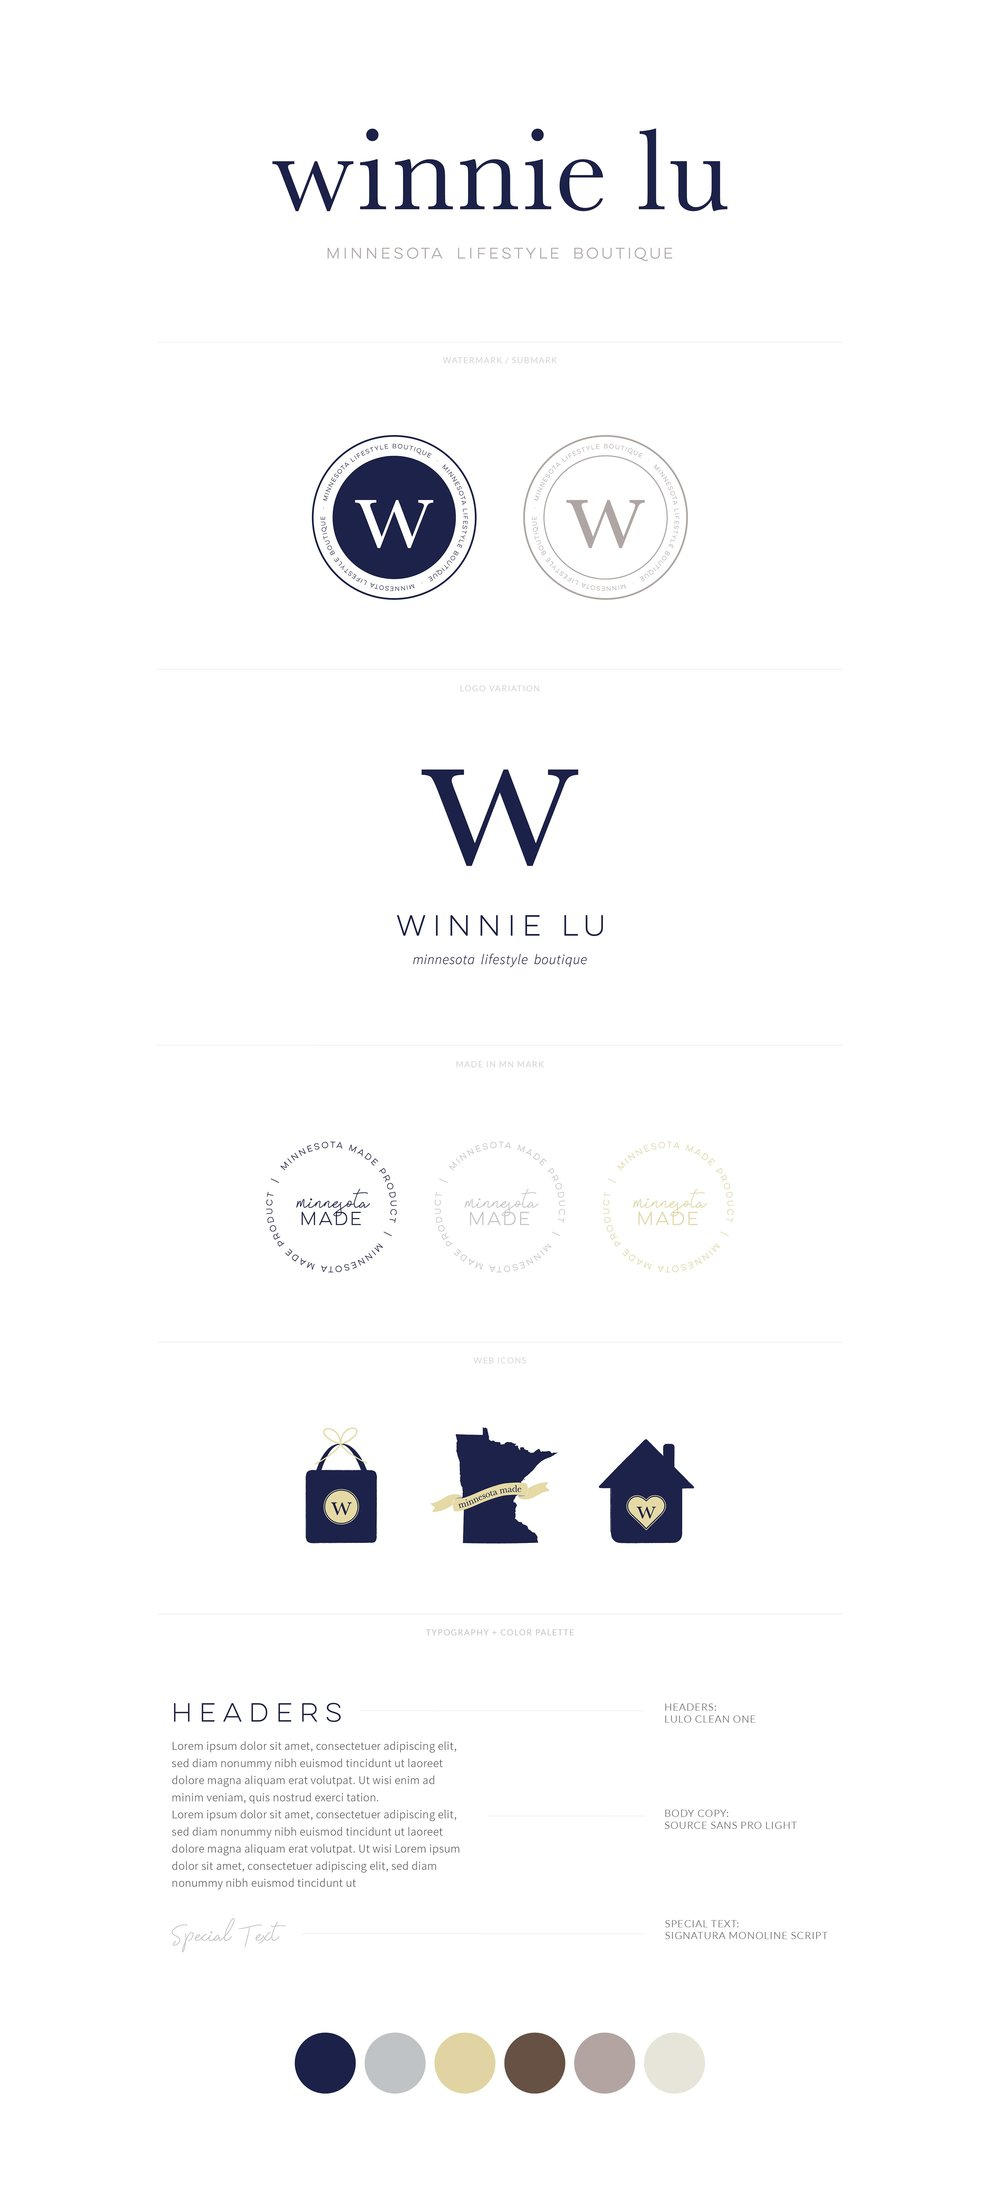 Winnie Lu Minnesota Lifestyle Boutique | Classic, Modern, Minimal Logo, Watermark, Web Icons. Font Styling and Color Palette | Branding by AllieMarie Design